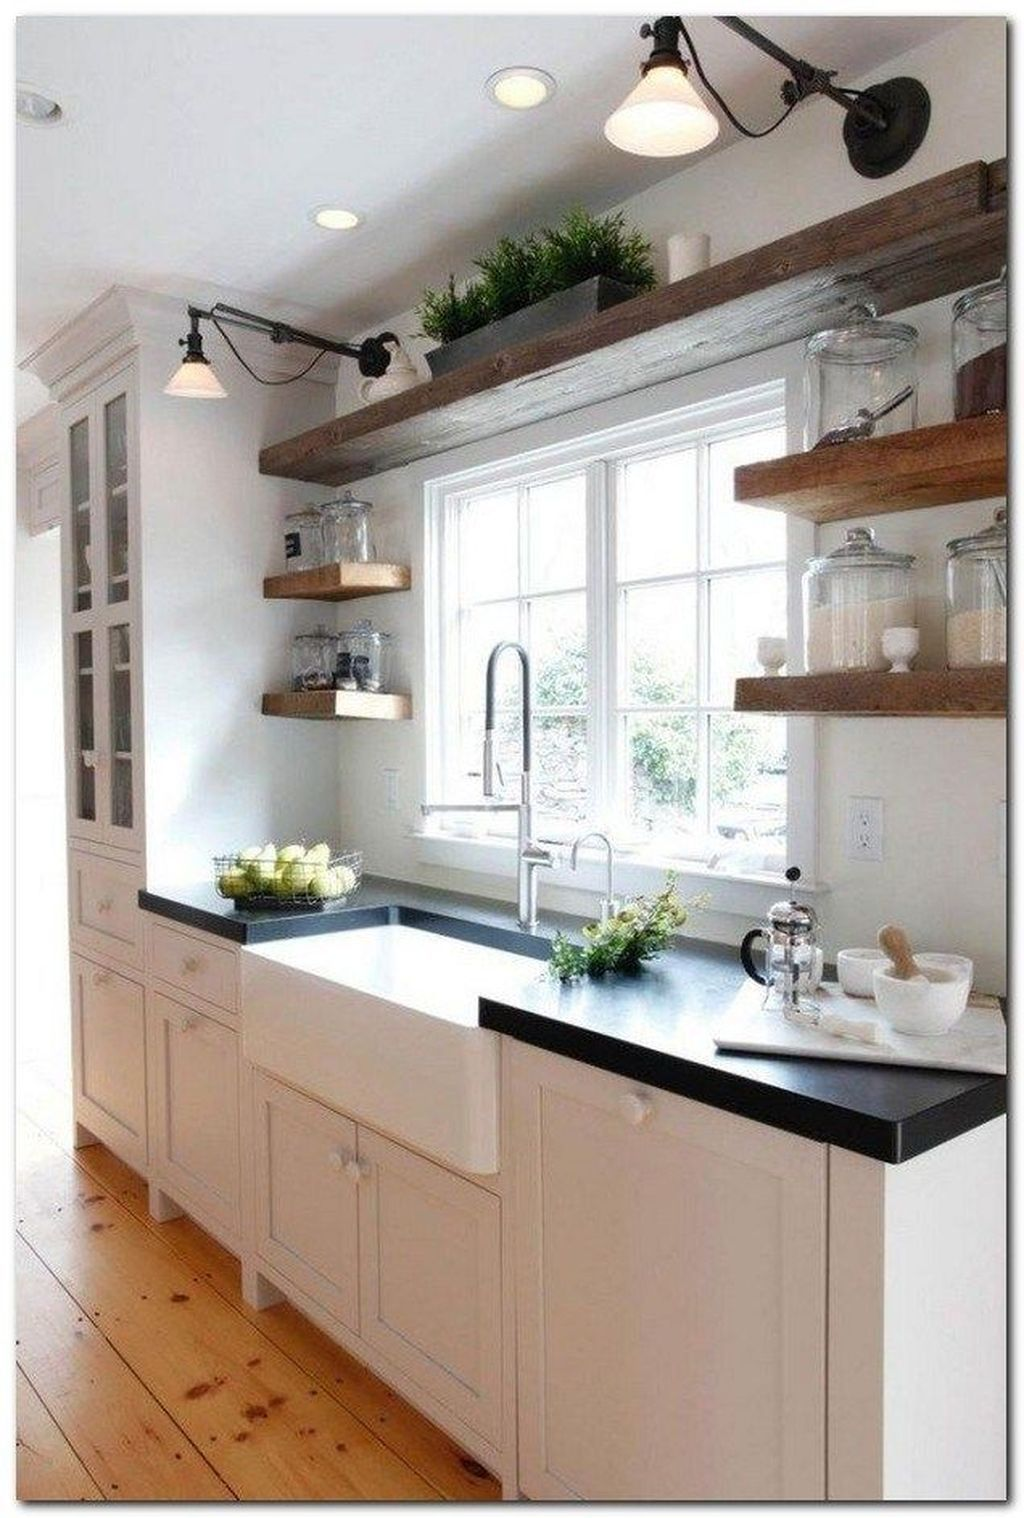 42 Adorable Small Kitchen Remodel Design Ideas On A Budget Kitchen Remodel Small Kitchen Remodel Kitchen Layout